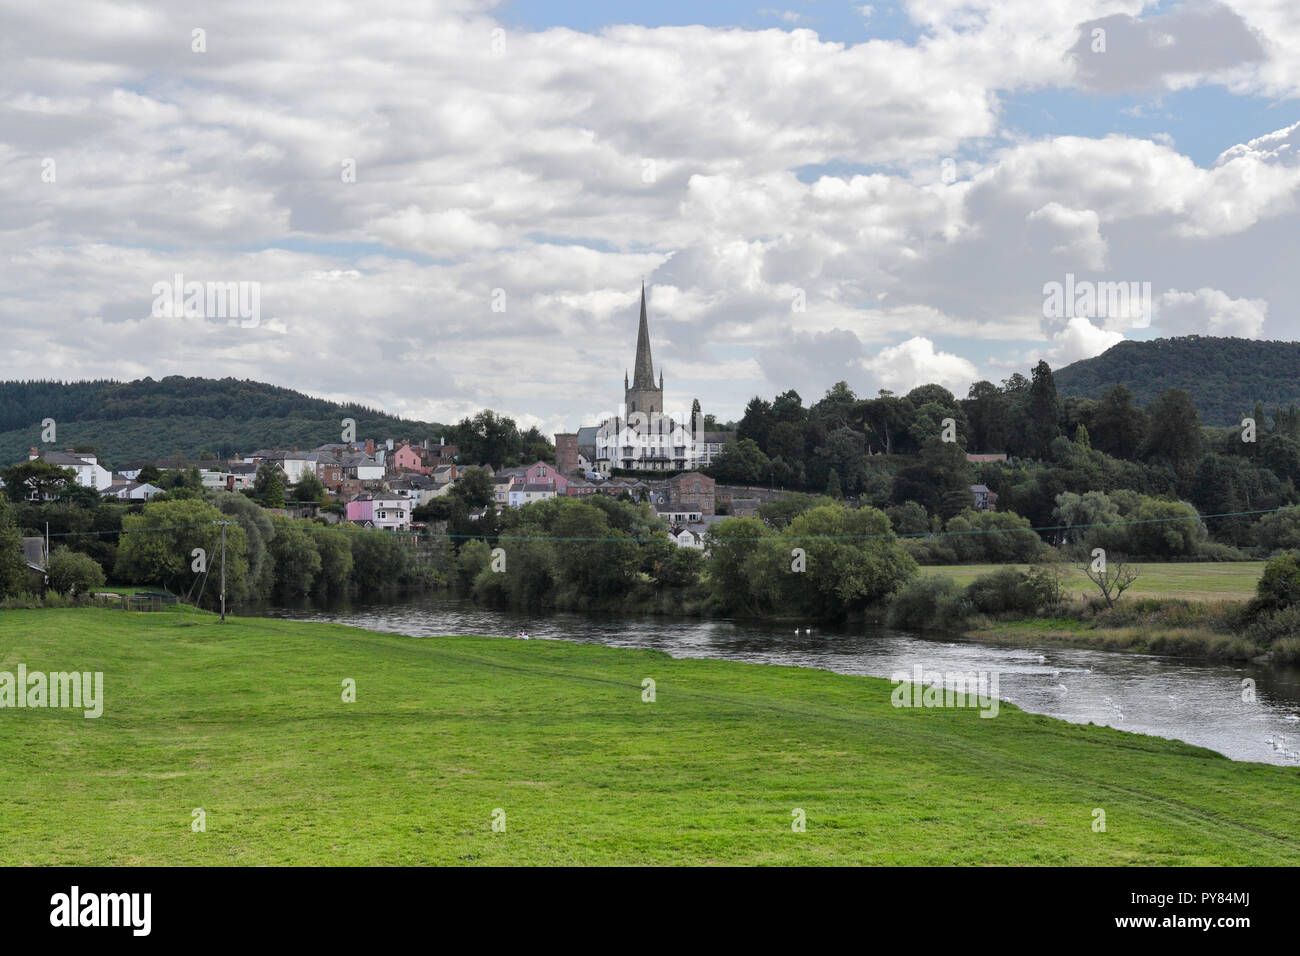 Ross on Wye dans le Herefordshire Angleterre UK Banque D'Images